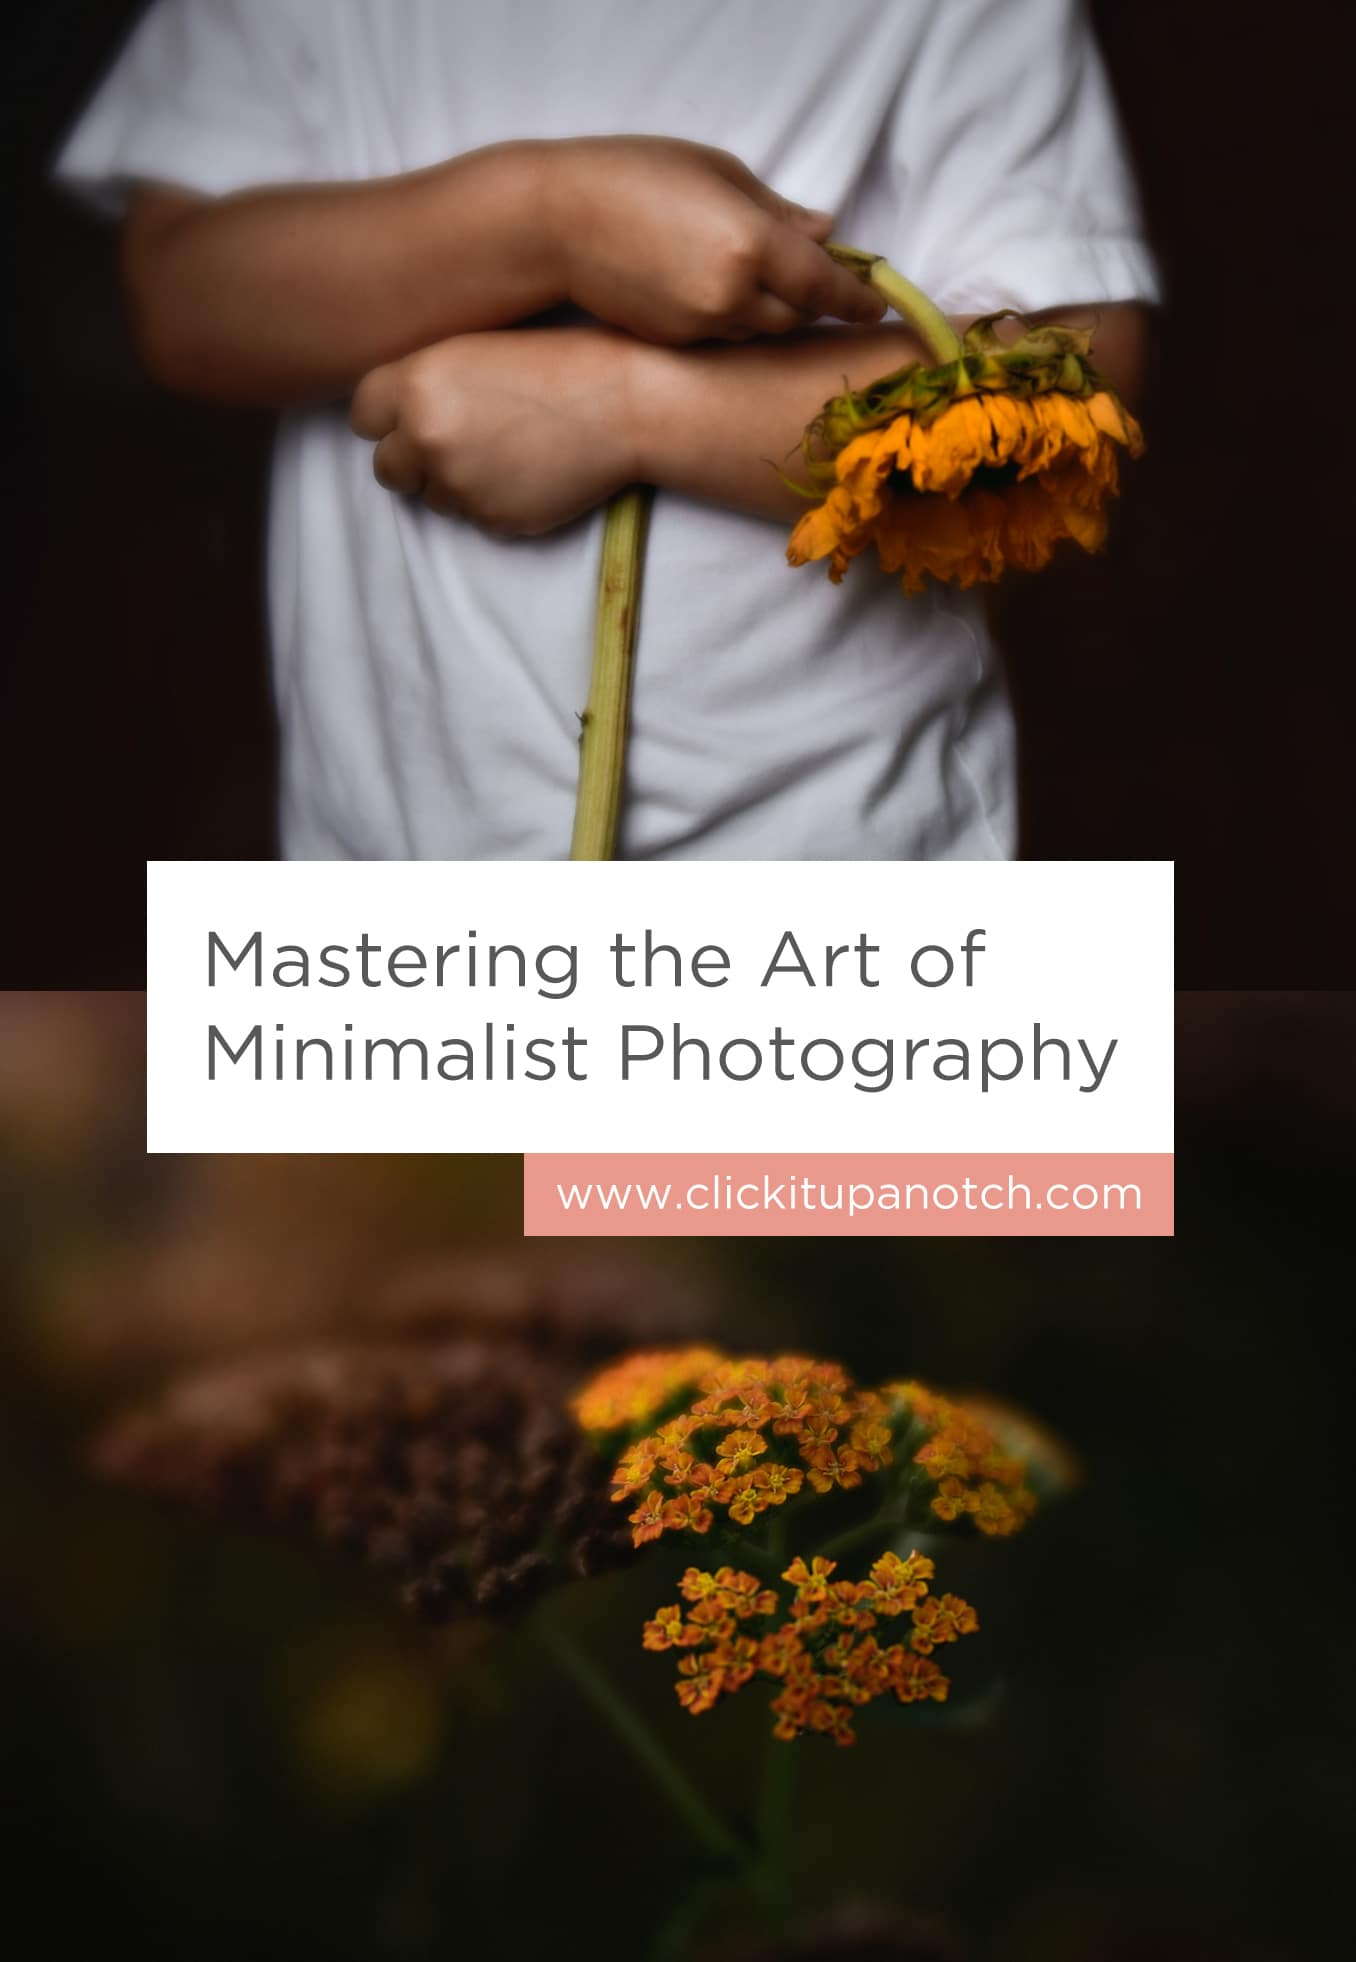 """I love the look of minimalist photography and appreciate all the examples she gave to achieve these type of images. Read - """"Mastering the Art of Minimalist Photography"""""""